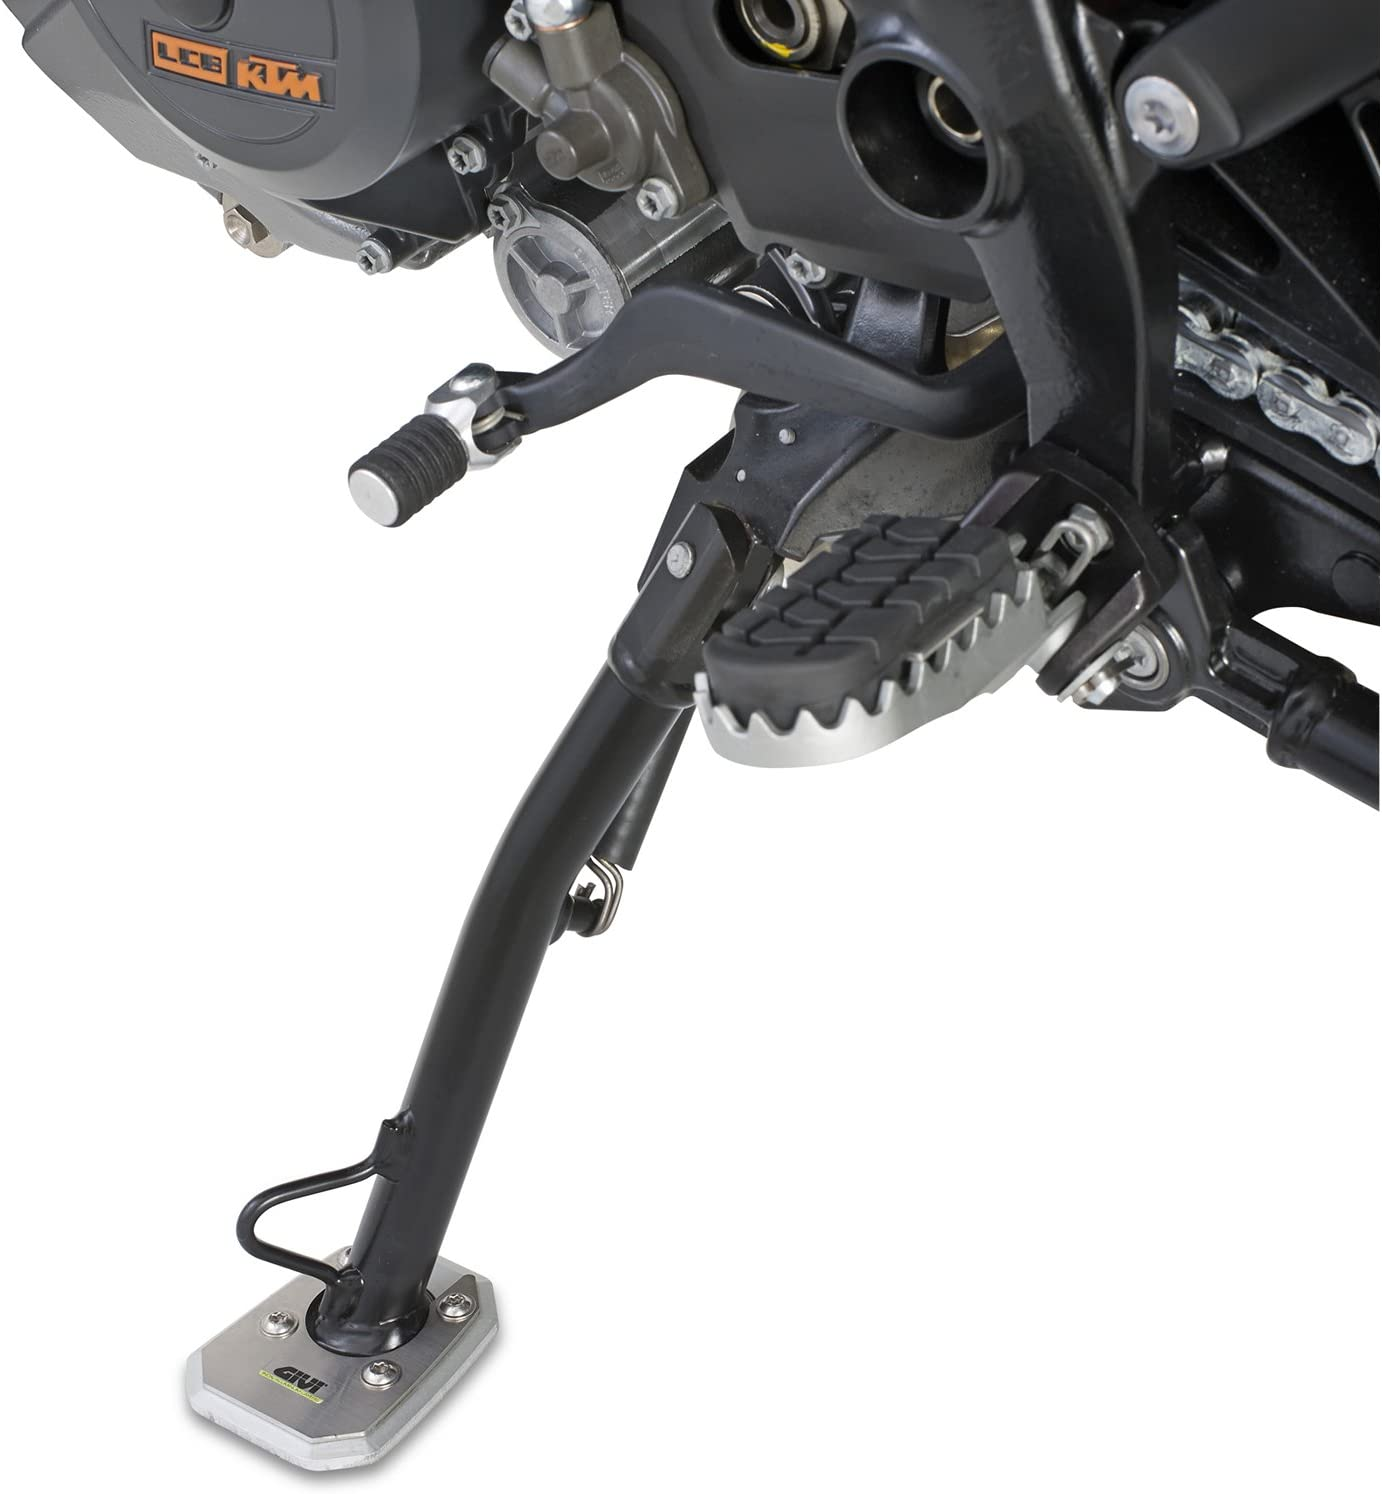 GIVI Es4103 Side Stand Foot Enlarger for Kawasaki Versys 650